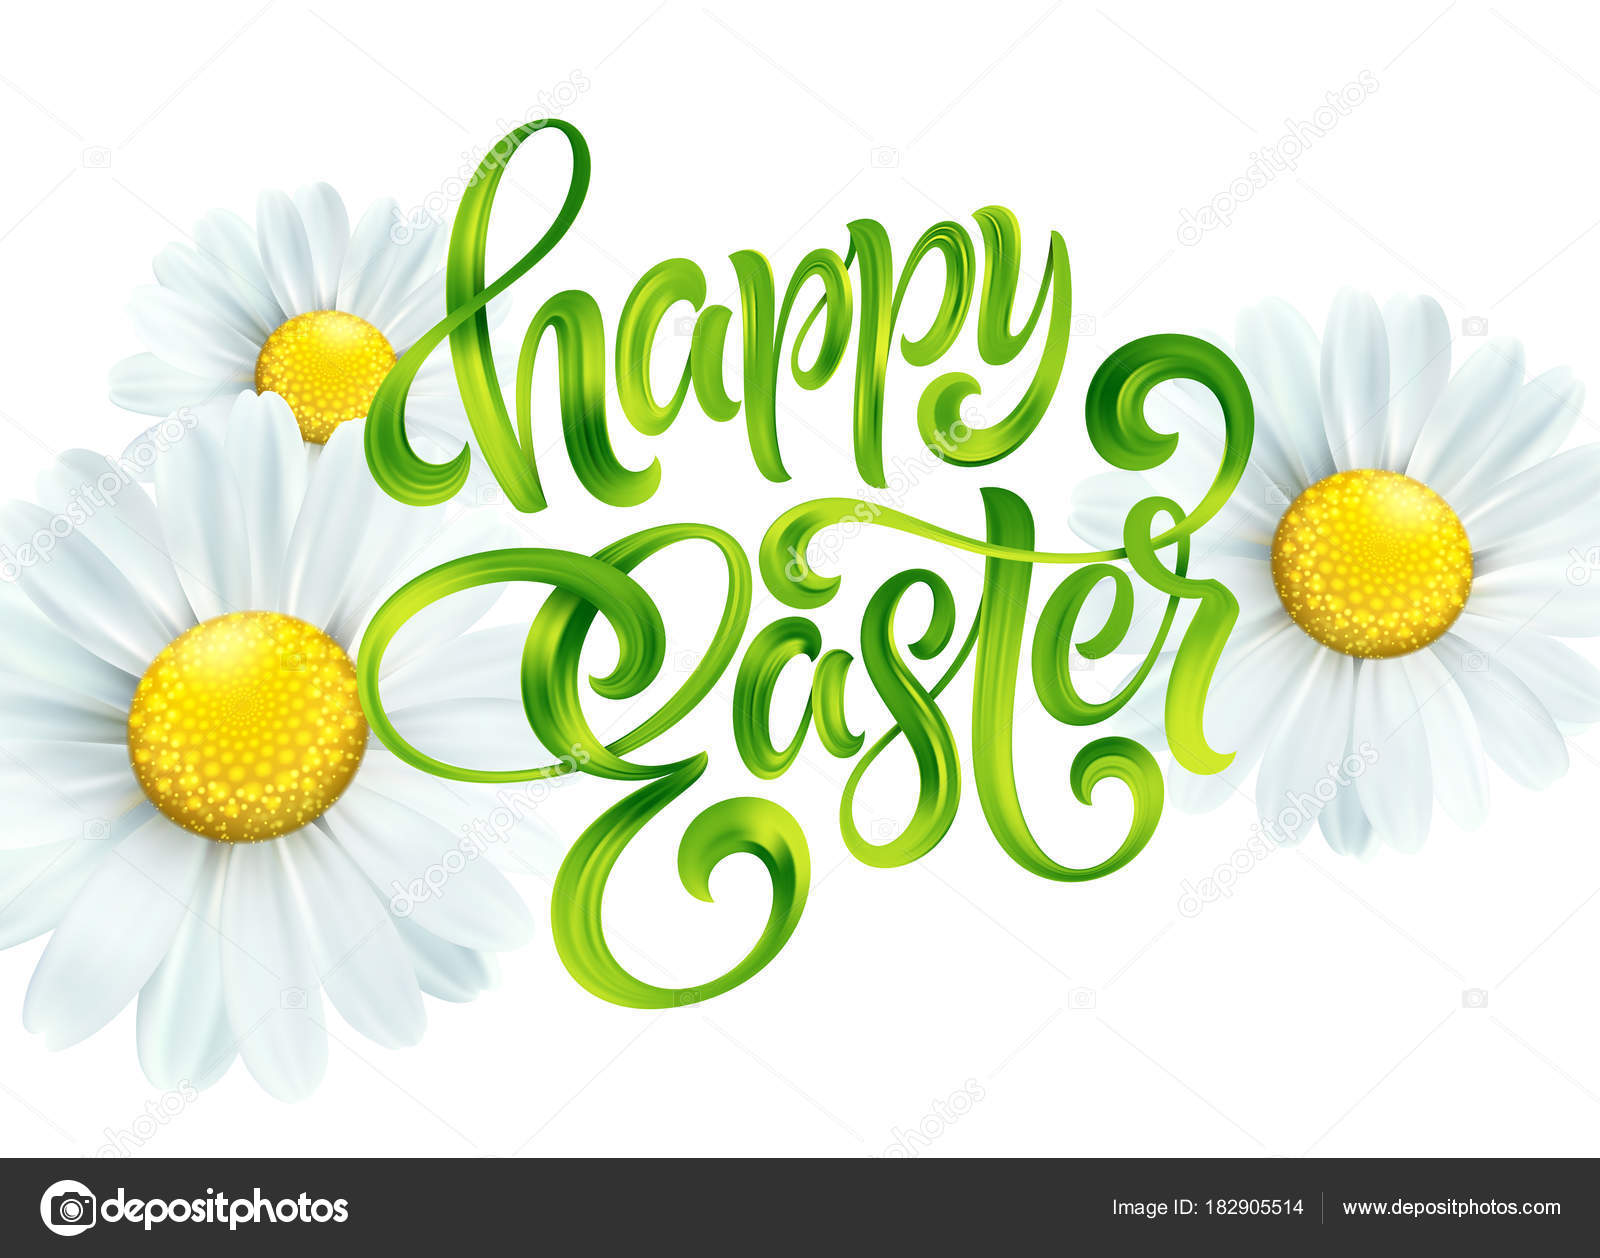 Happy Easter Colorful Paint Lettering Greeting Card With Daisies